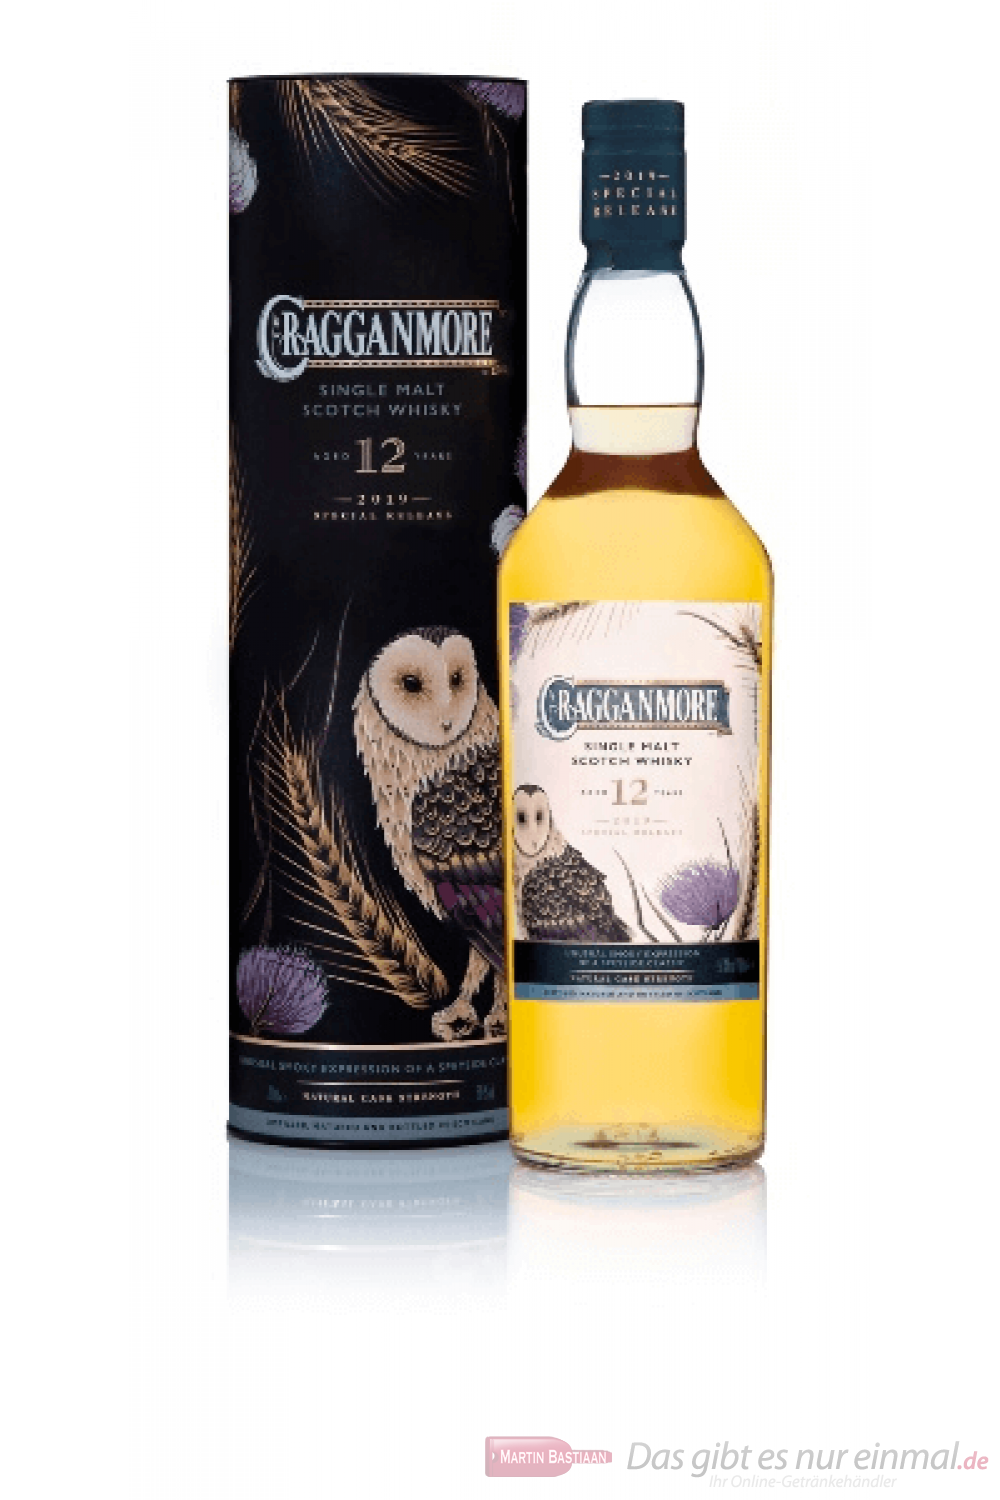 Cragganmore 12 Years Special Releases 2019 Single Malt Scotch Whisky 0,7l